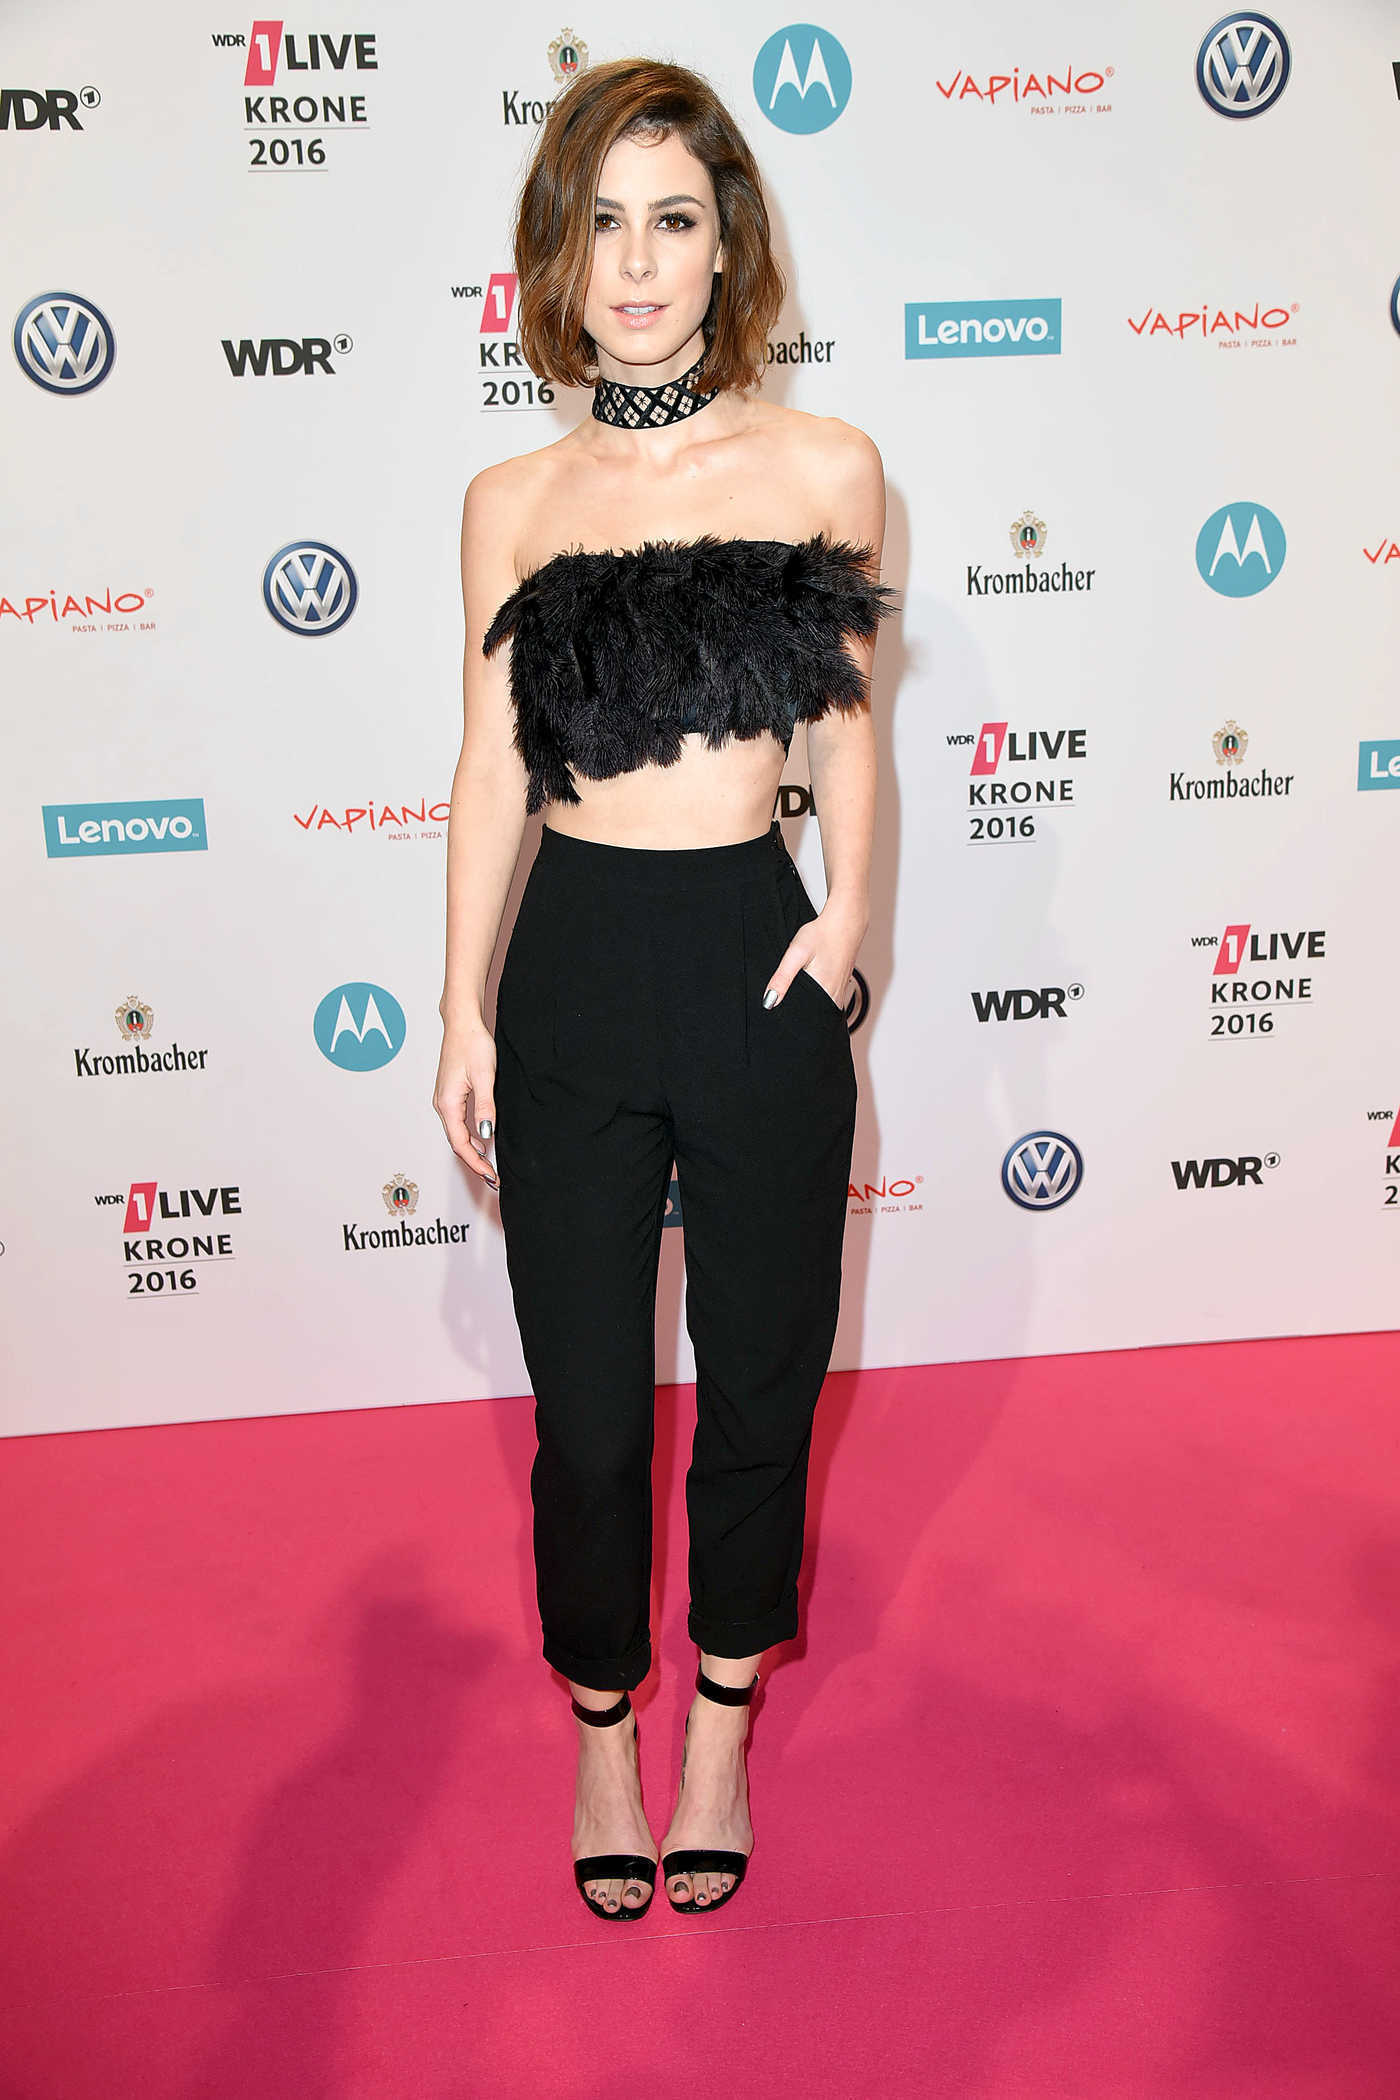 Lena Meyer-Landrut at the 1Live Krone Awards in Bochum 12/01/2016